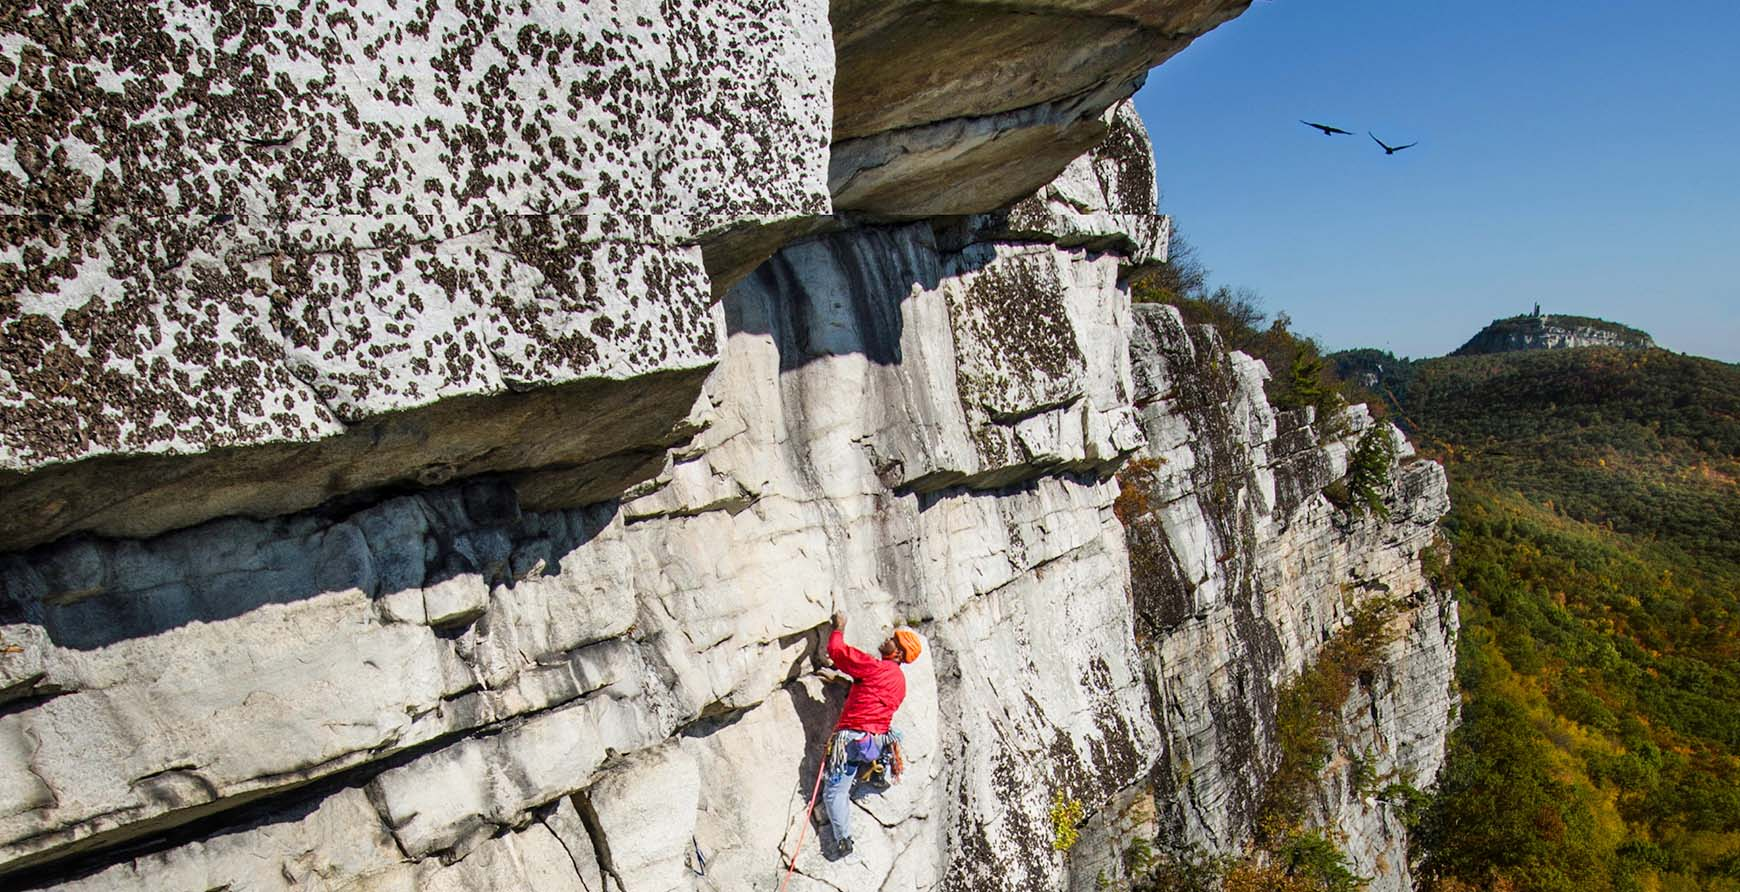 Rock Climbing Rock and Snow New Paltz NY Outdoor Gear